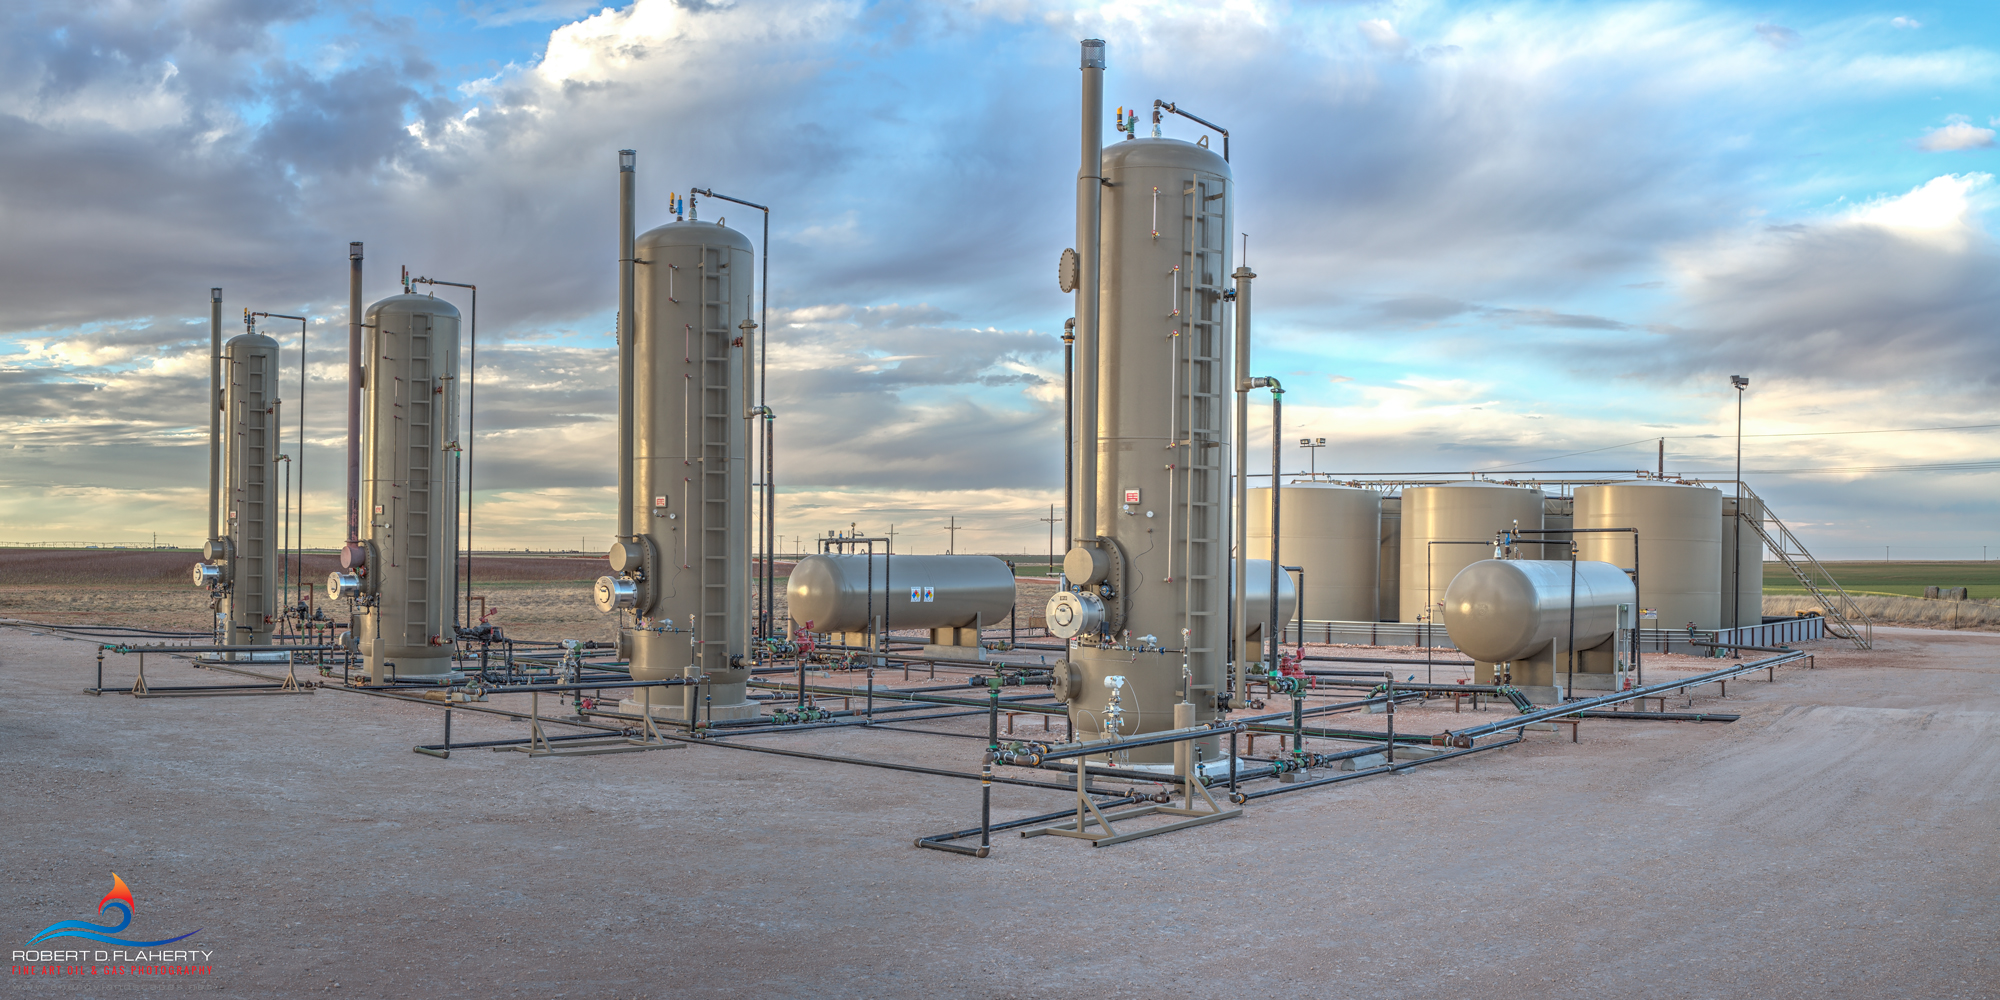 oilfield separator, battery, panorama, sunset, San Andres, Permian Basin, mural, fine art mural, oil & gas gathering, midstream oil & gas art, midstream oilfield art, fine art oil & gas photography, photo